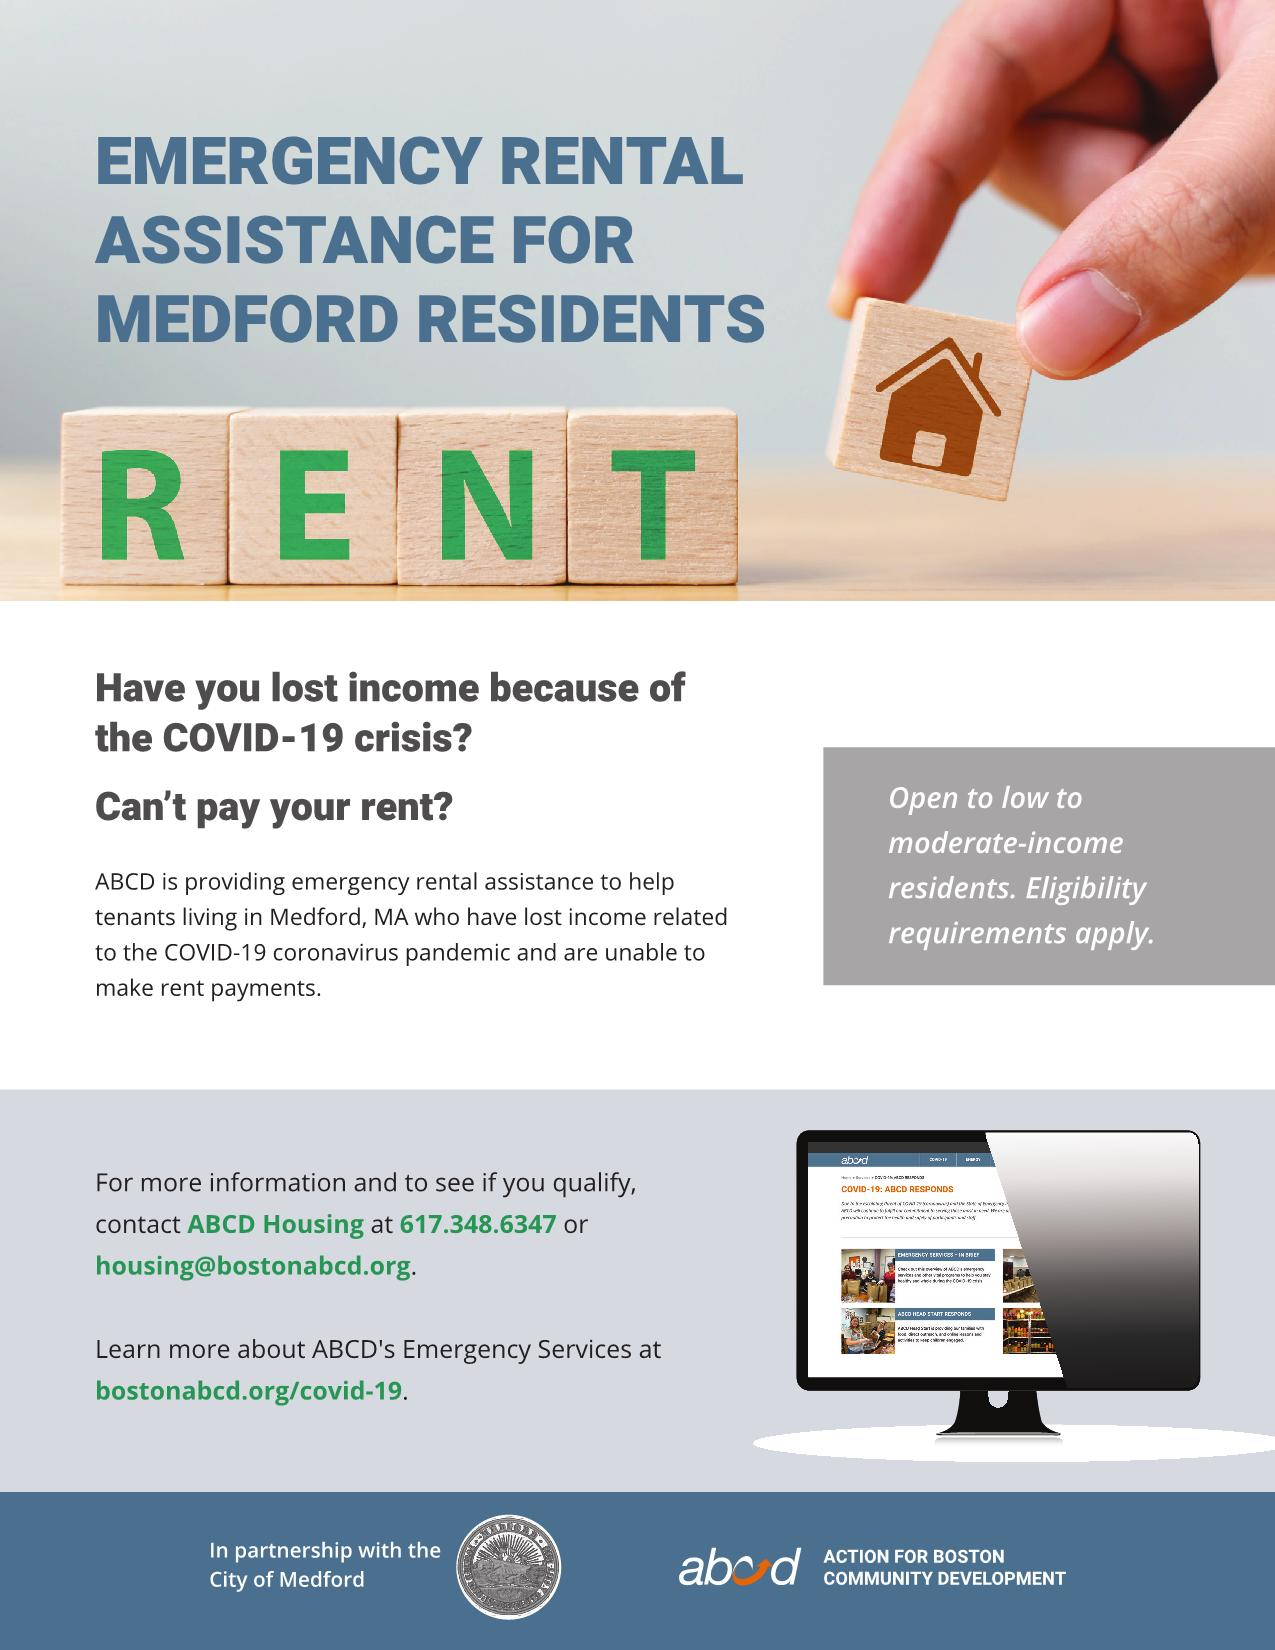 HousingRentalAssistance-Flyer-(1)-1_1.jpg